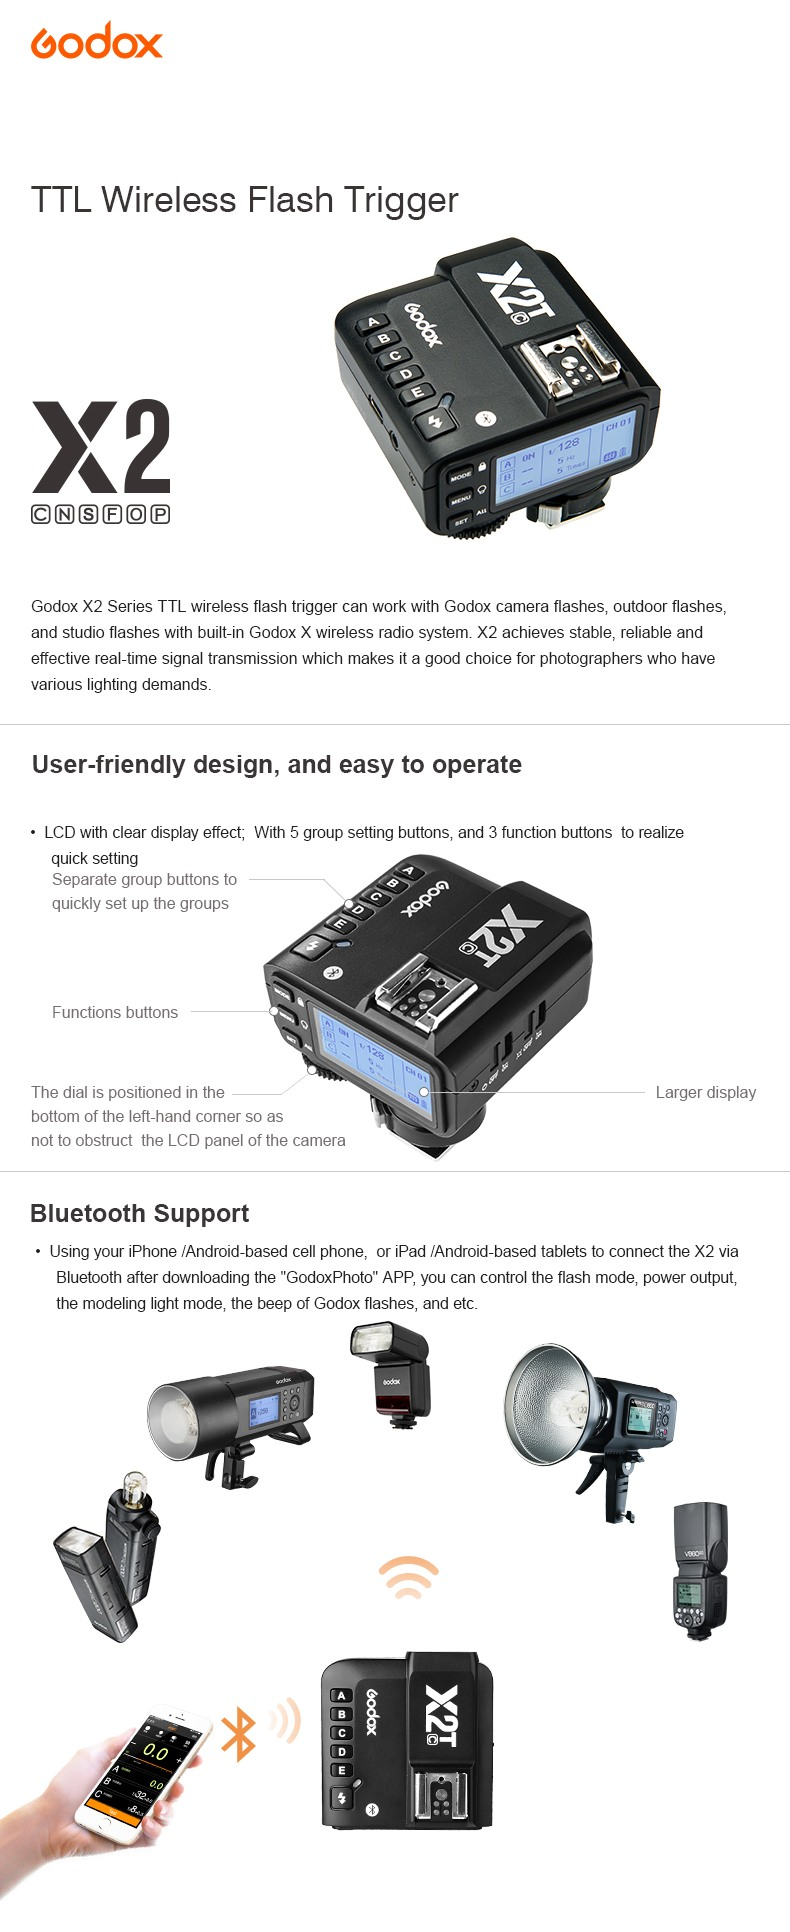 Godox X2 TTL Wireless Flash Trigger, X2T User-friendly design and easy to operate. Bluetooth Support.